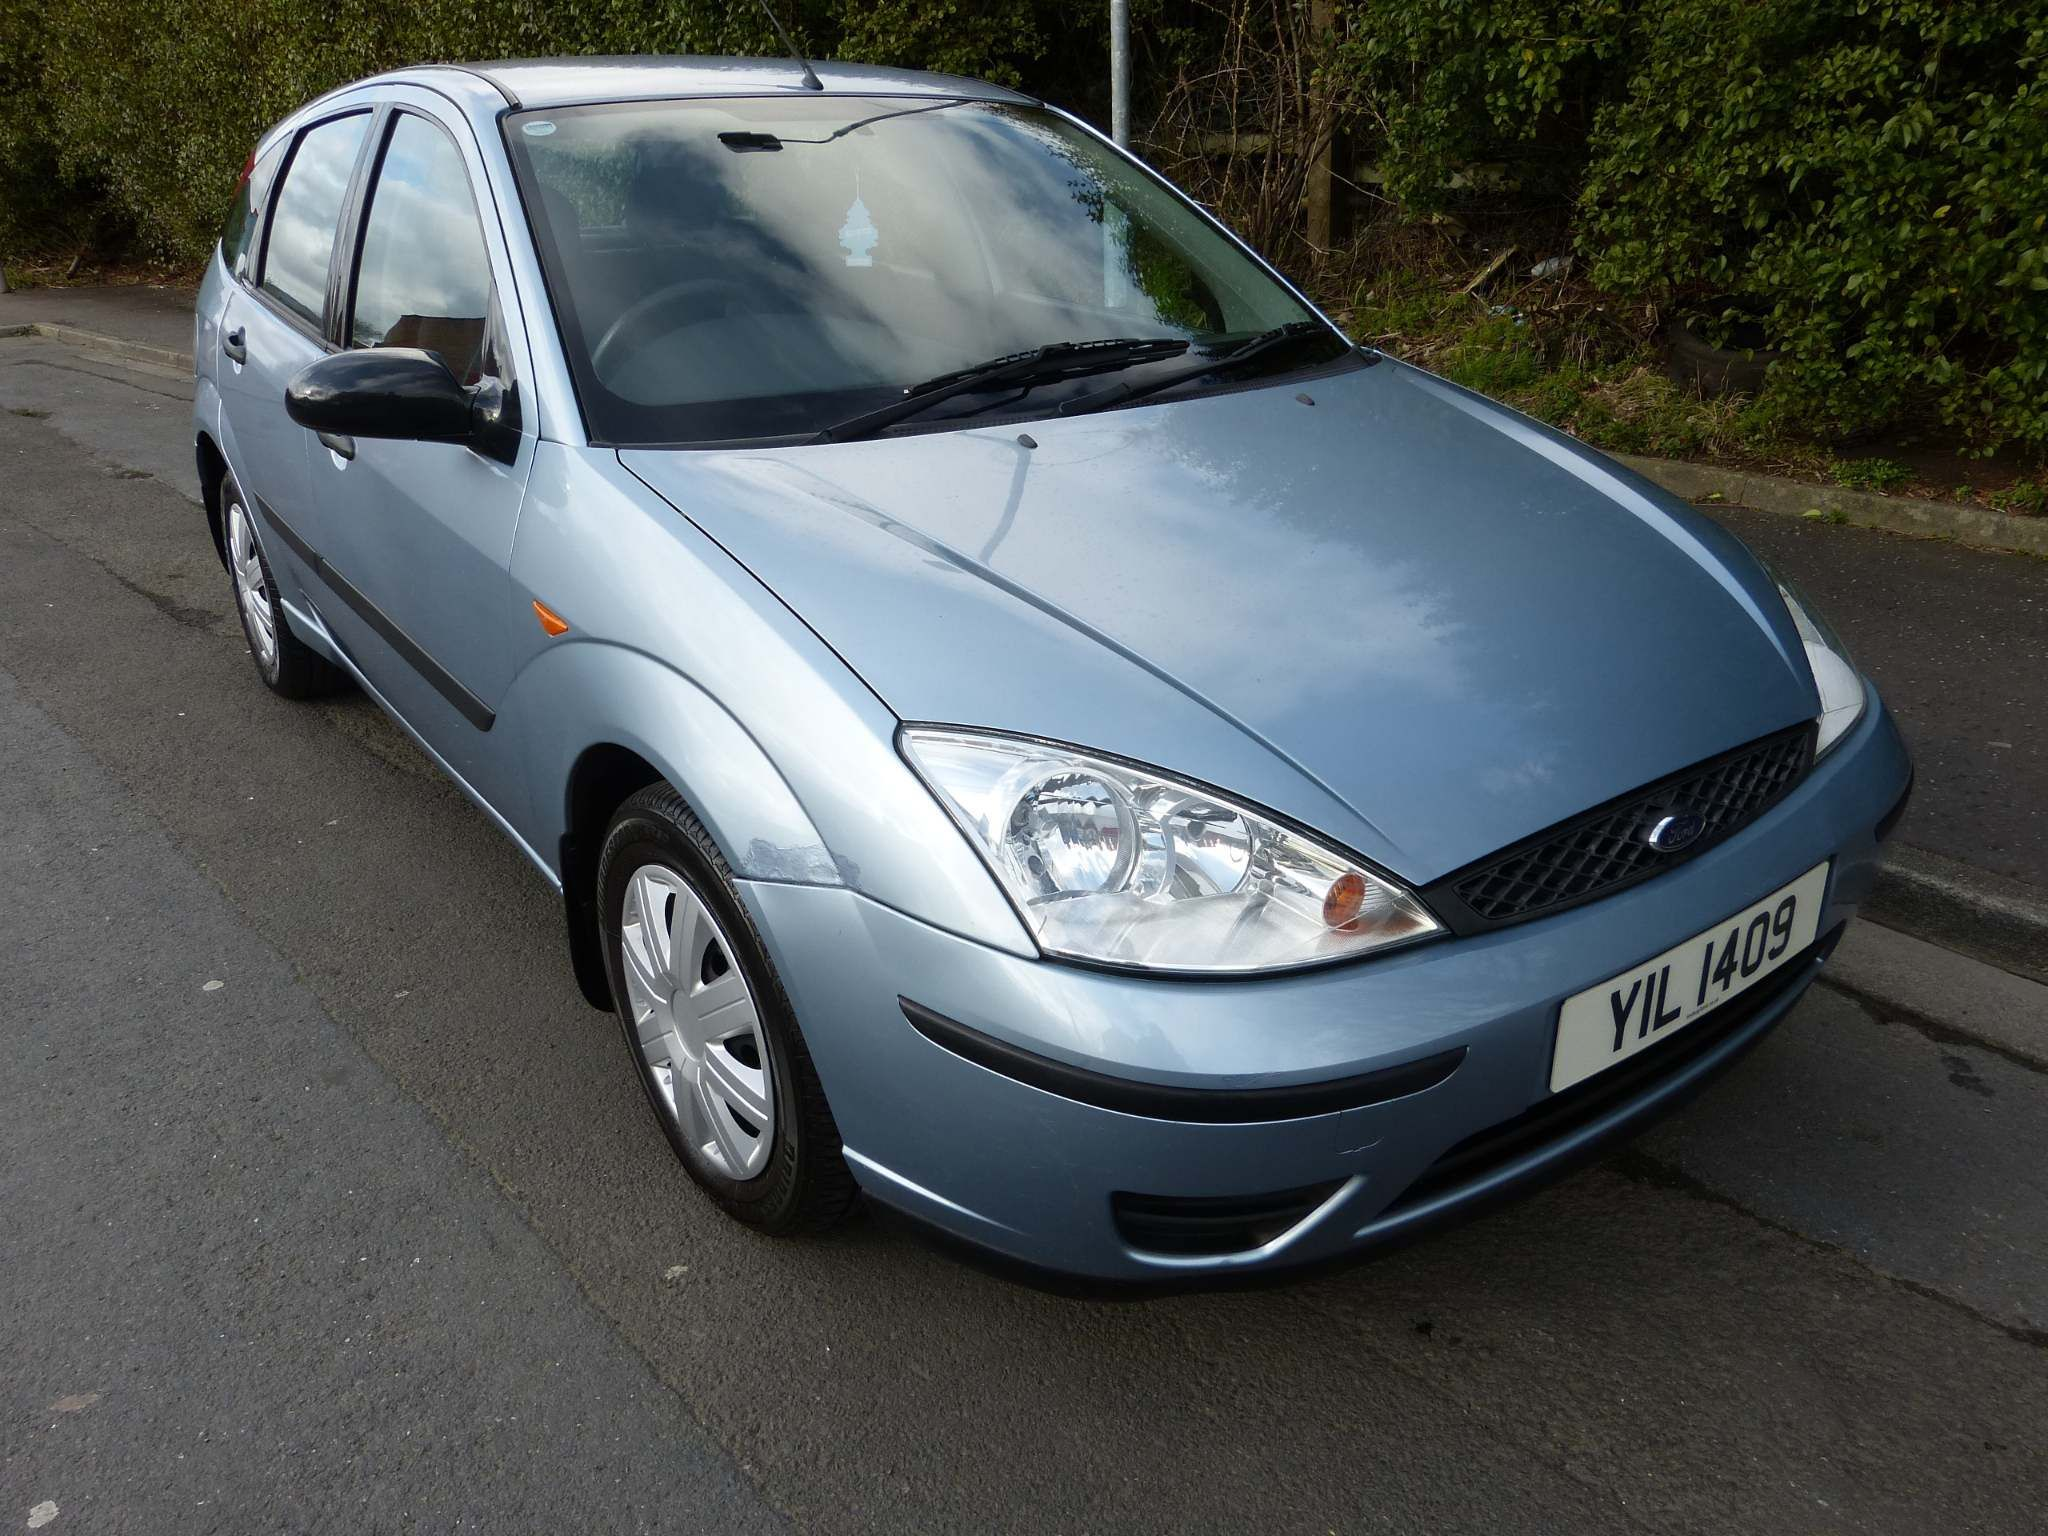 2004 FORD Focus 1.6 i 16v Flight Petrol Manual  – Beechlawn Motors Belfast